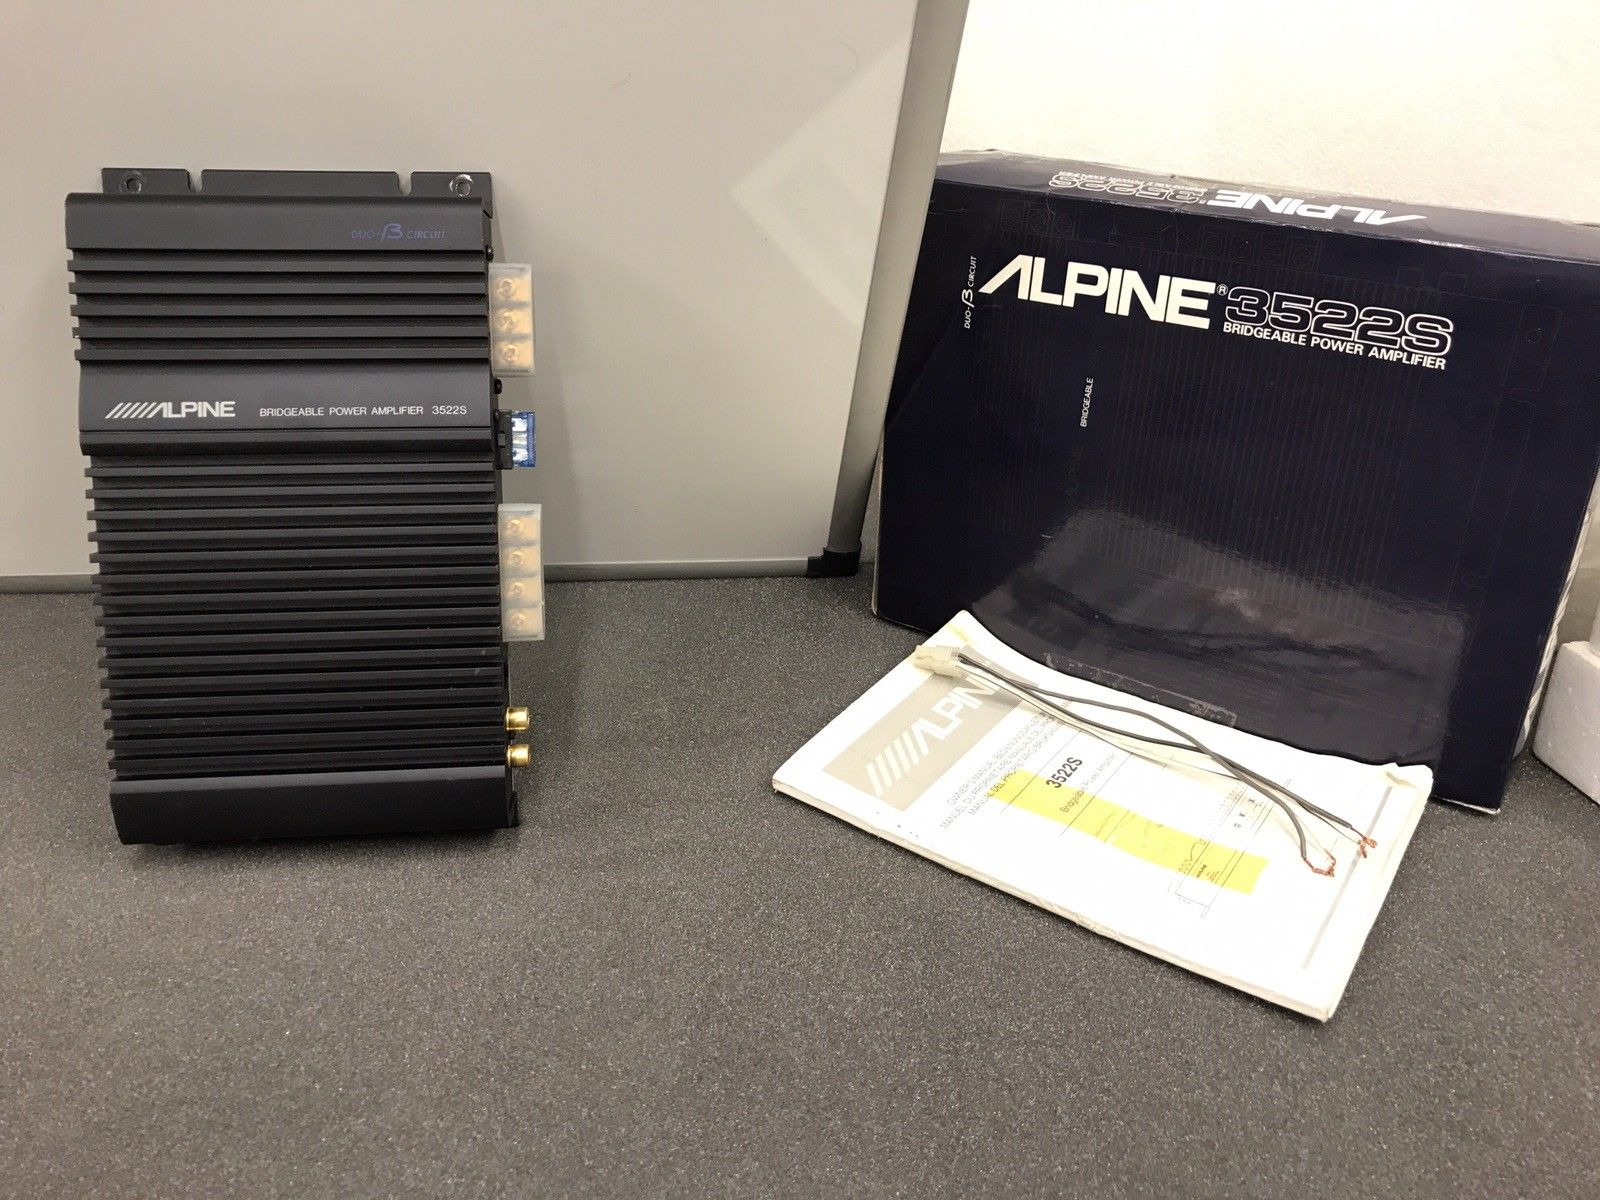 Alpine 3522s Old Classic Vintage Car Add On Amp Amplifier 2 Channel Duo-B Boxed